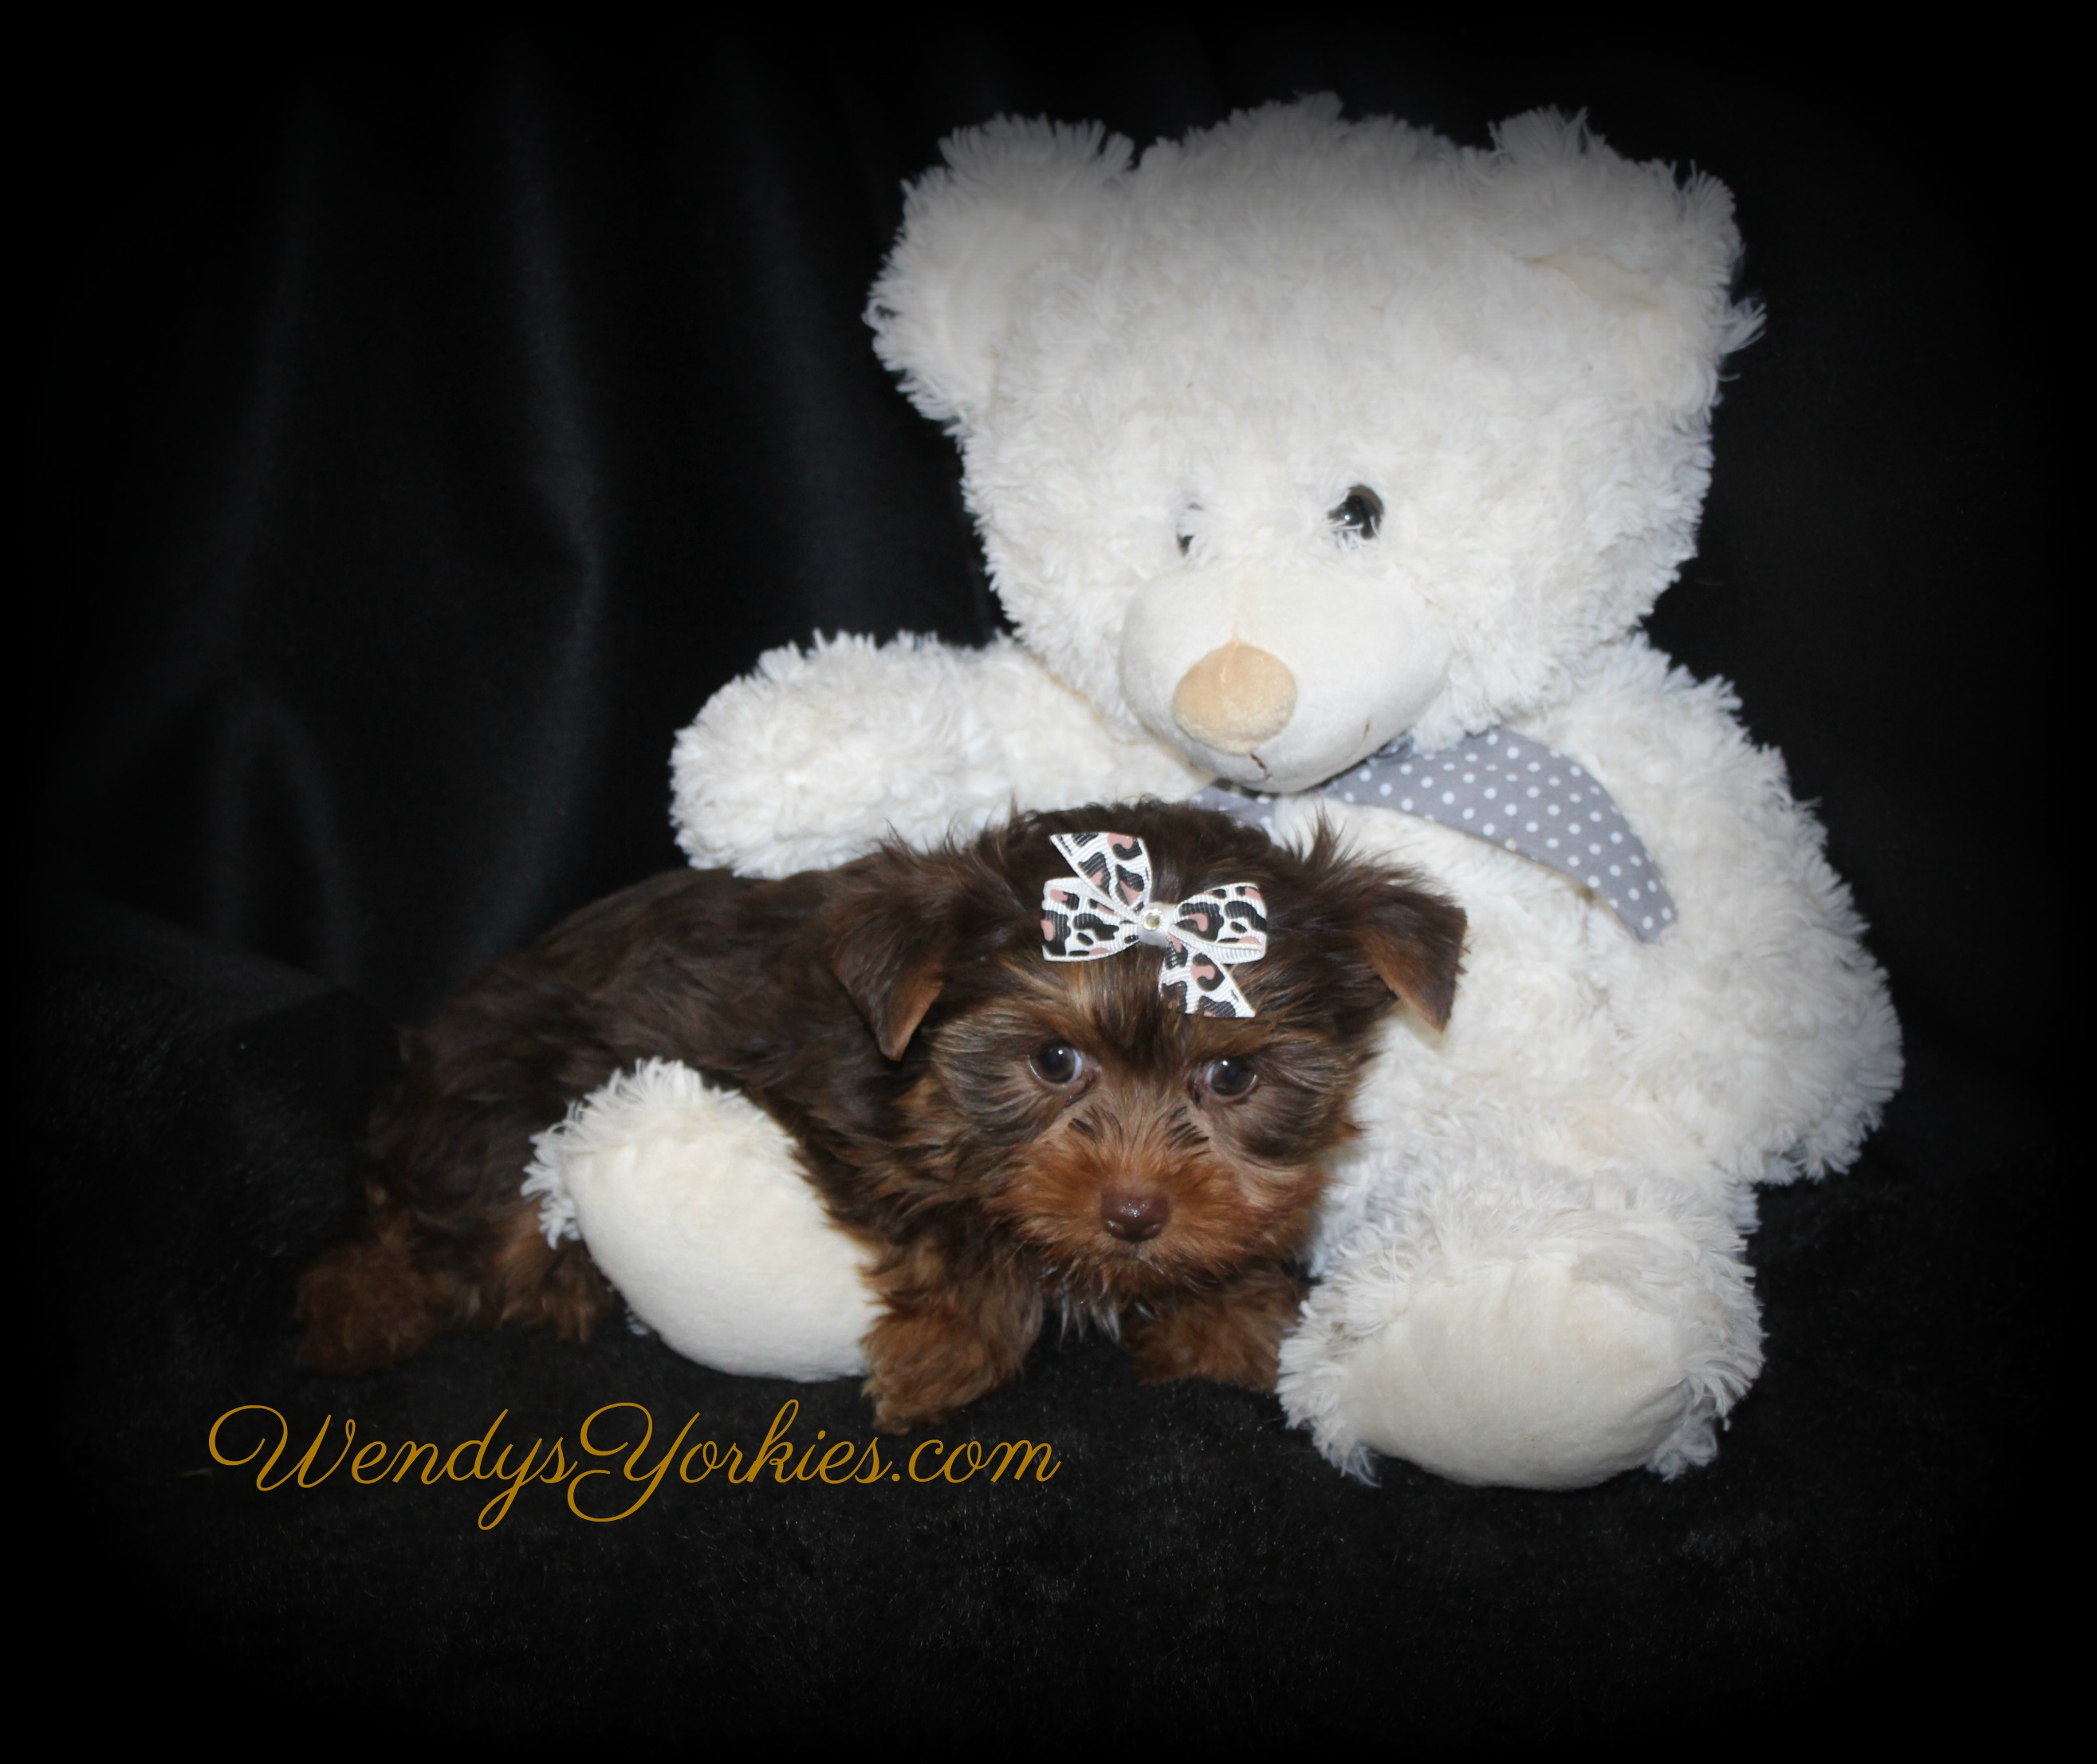 Chocolate Yorkie puppy for sale, CM2, WendysYorkies.com